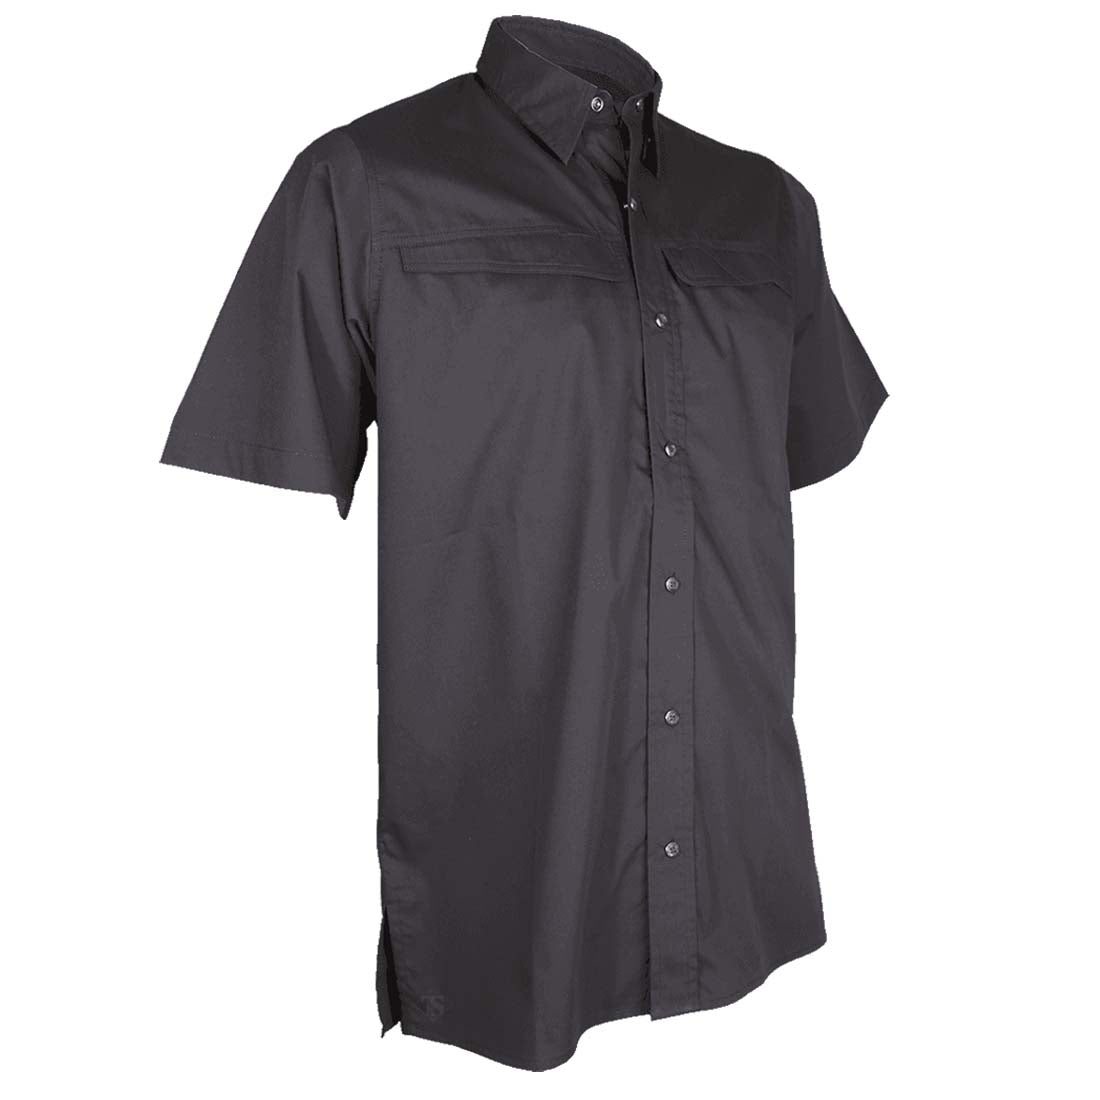 Tru-Spec 24/7 Series Men's Short Sleeve Pinnacle Shirt